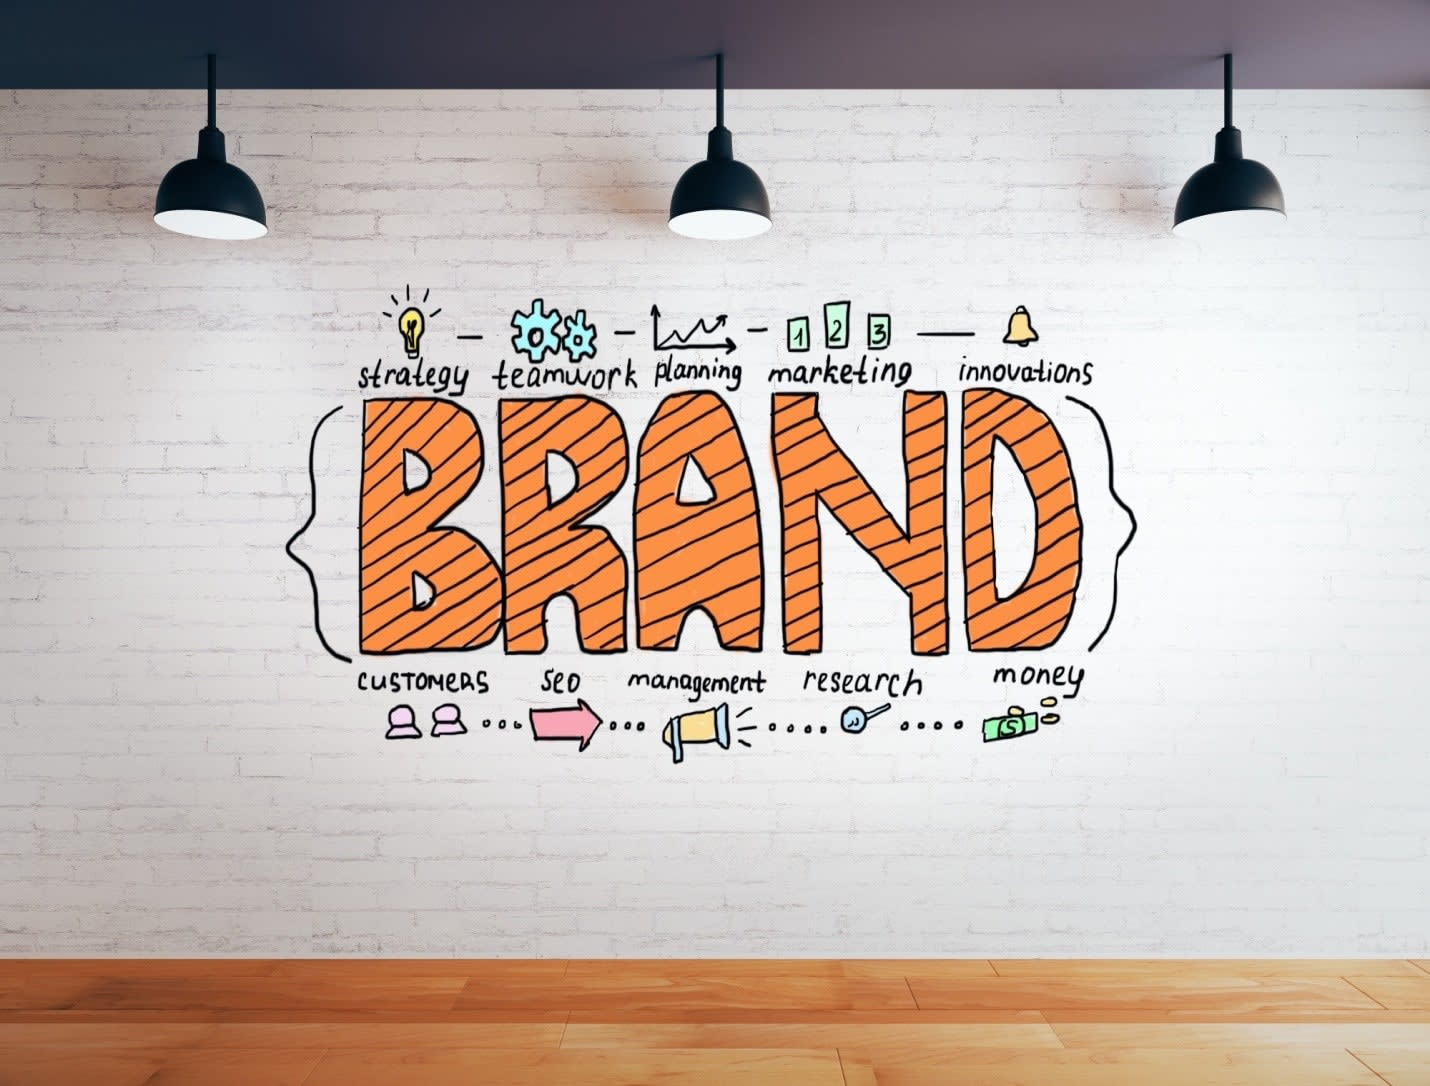 Why branding is important for hospitals